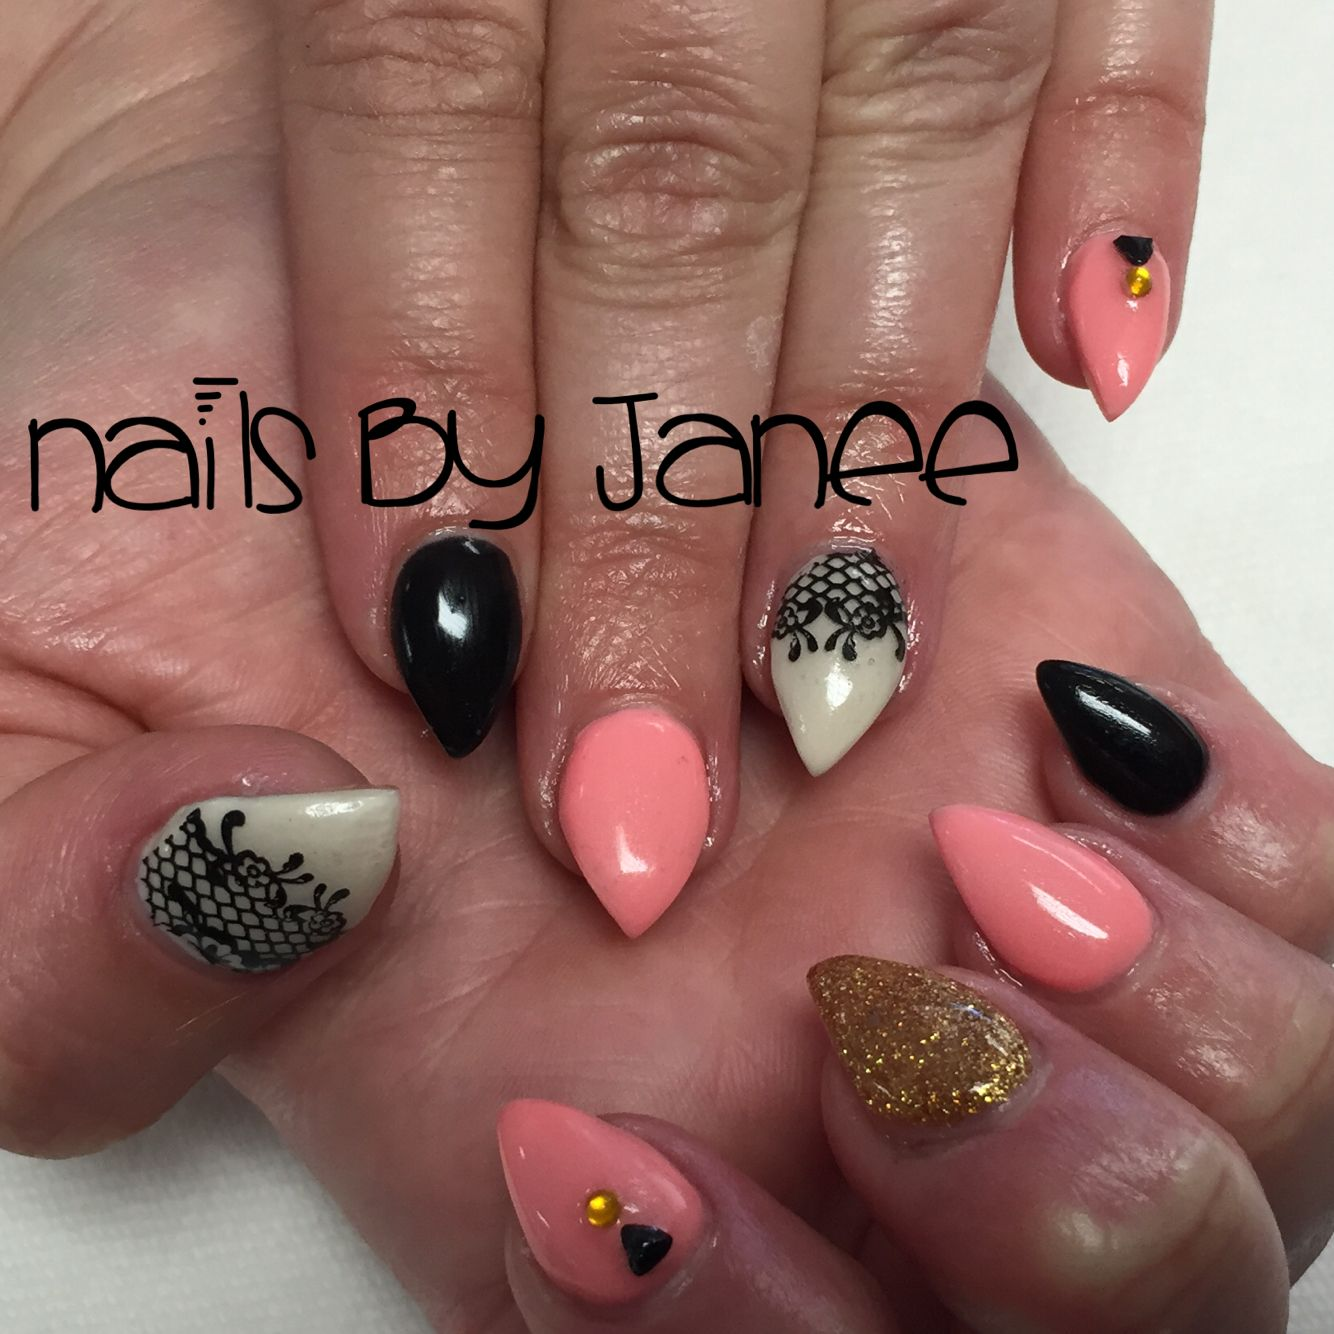 Gel nails by Janee. A Wild Hair Salon, Reno Nevada | Nails by Janee ...